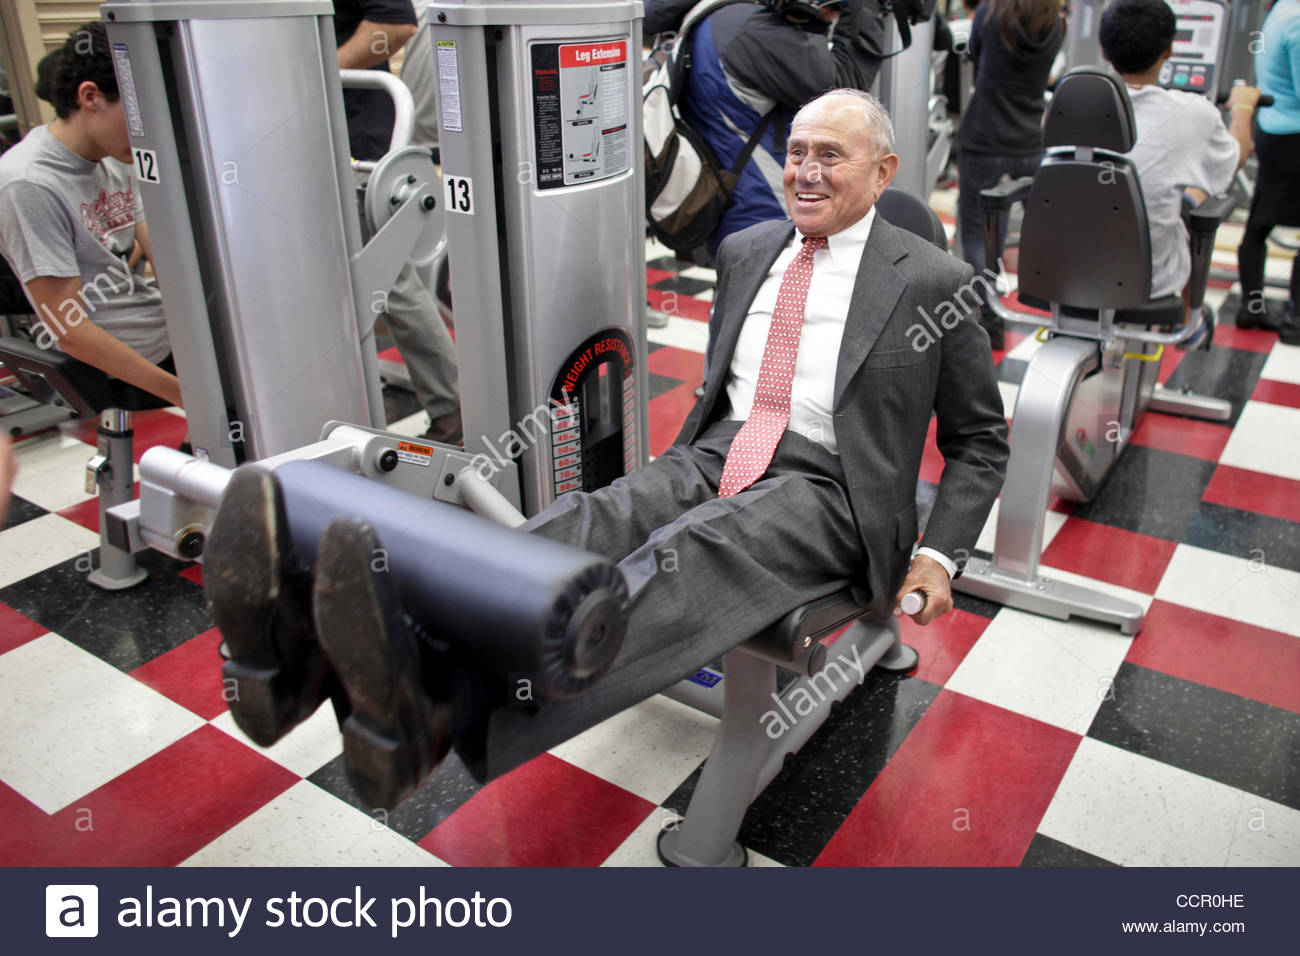 Oct. 6, 2010 - Reseda - LAUSD President Ramon Cortines tries out some of the new fitness equipment at the unveiling - Stock Image